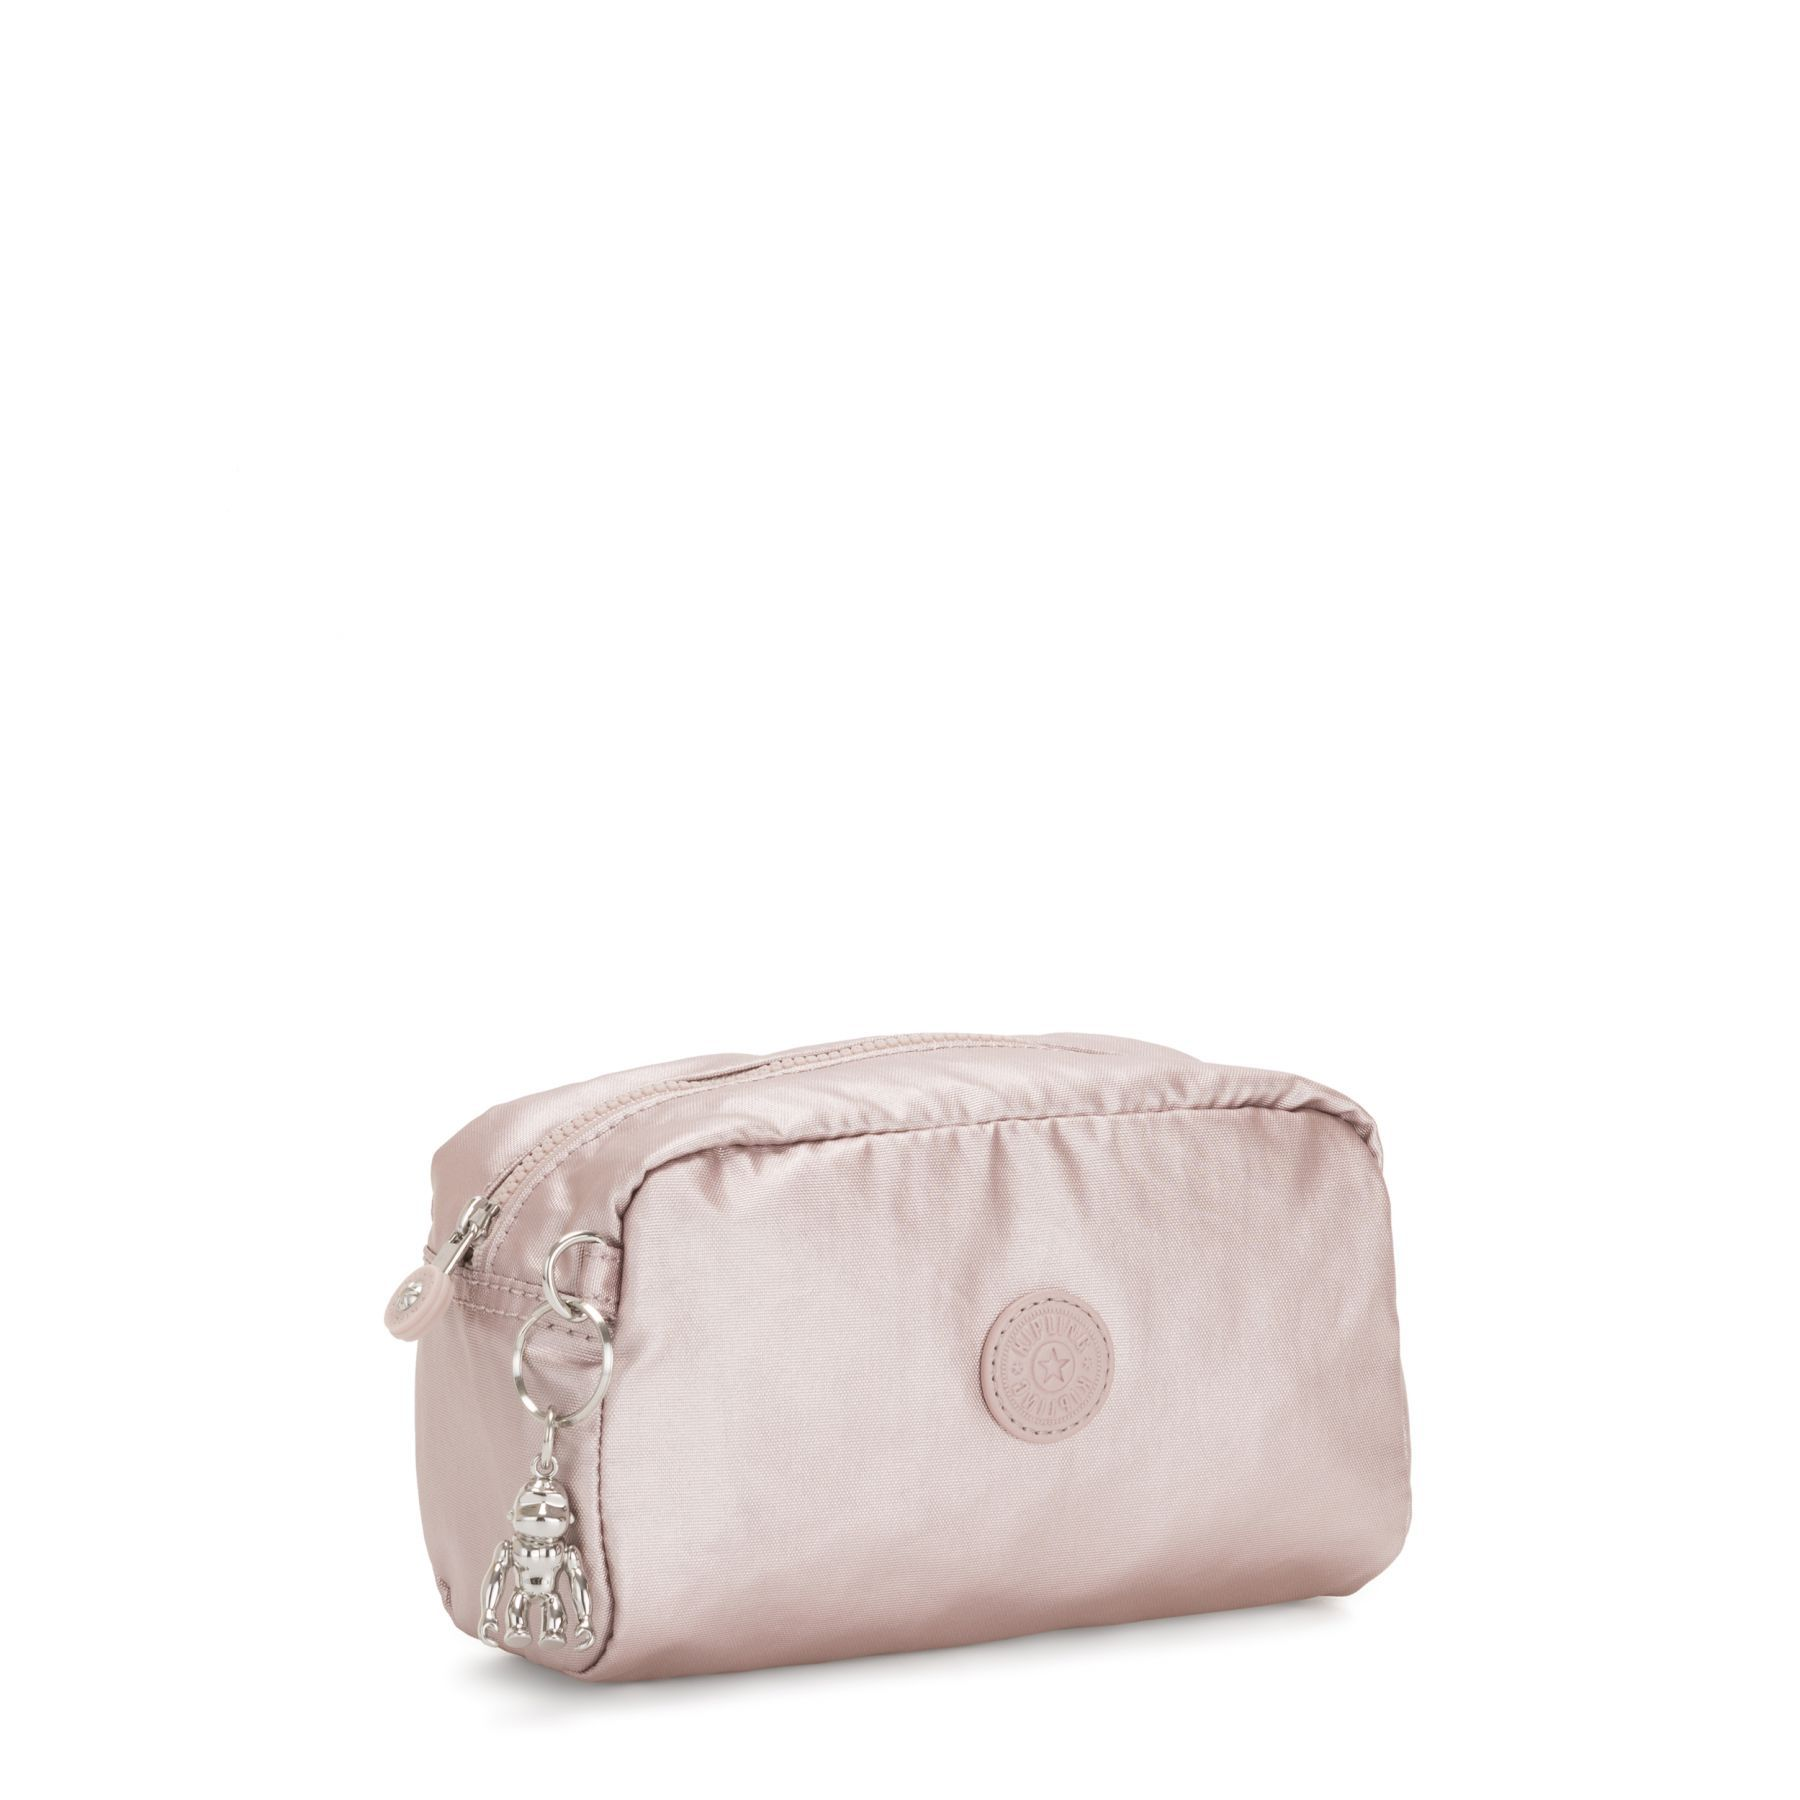 Necessaire Média Gleam Kipling Metallic Rose